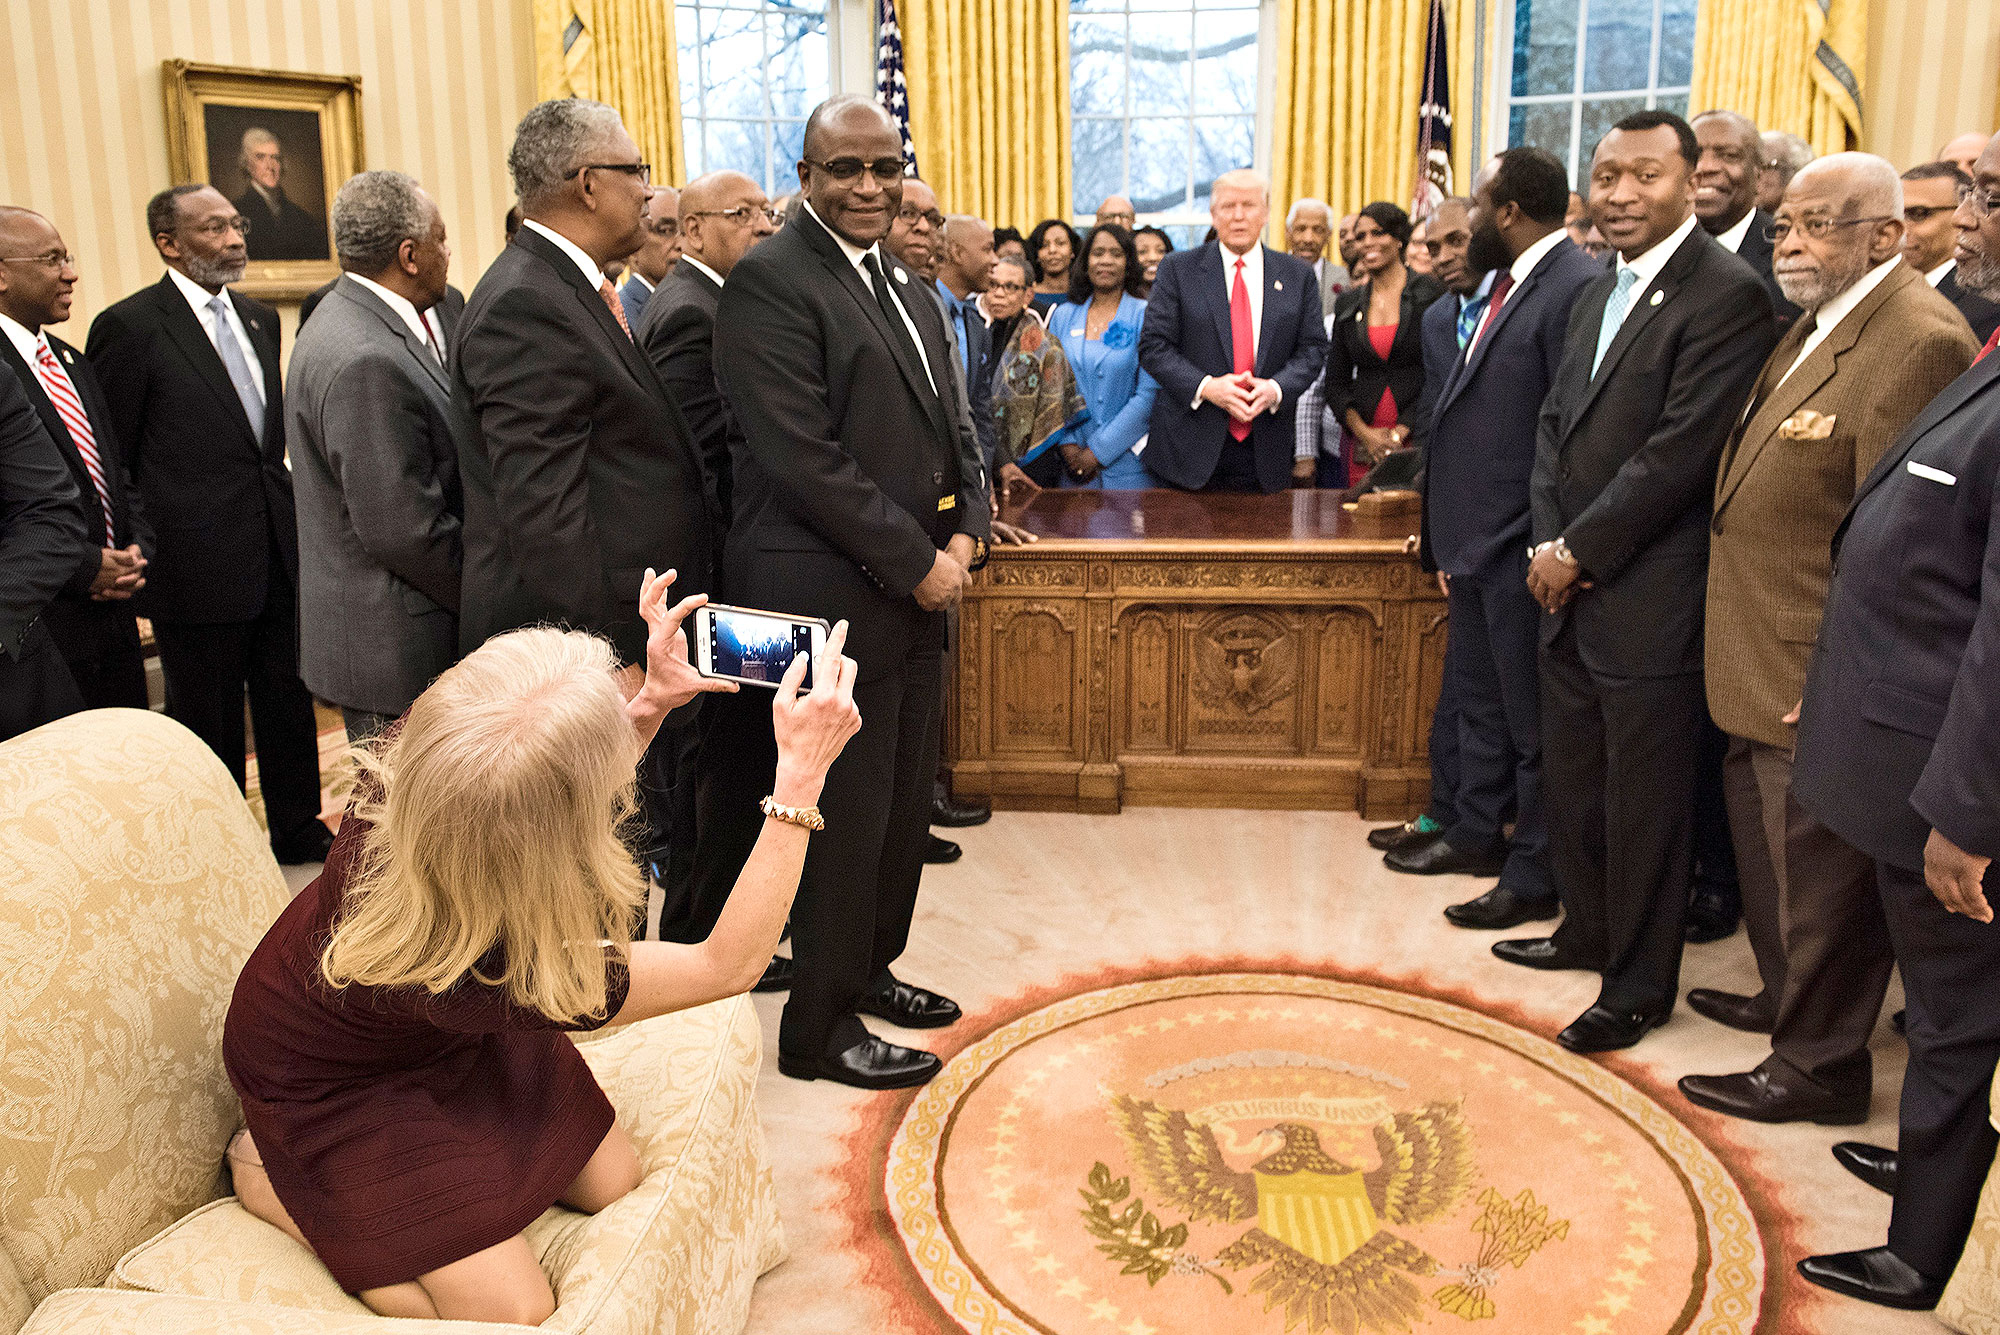 Counselor to the President Kellyanne Conway takes a photo as US President Donald Trump and leaders of historically black universities and colleges talk before a group photo in the Oval Office